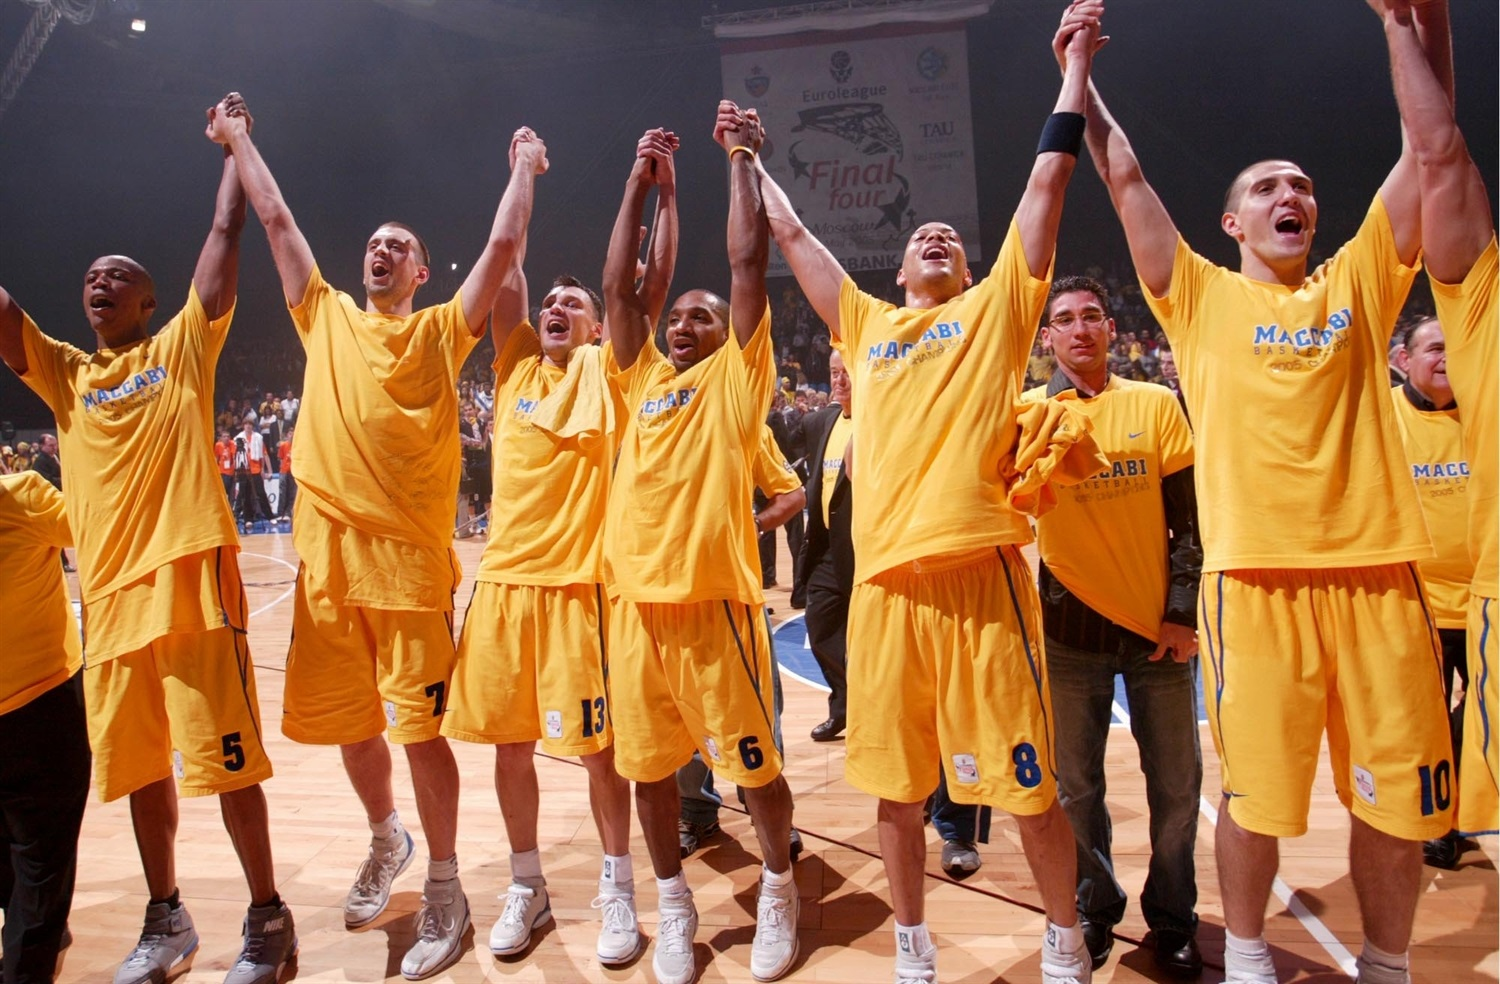 Maccabi Electra champ Euroleague 2004-05 - Final Four Moscow 2005 - EB04